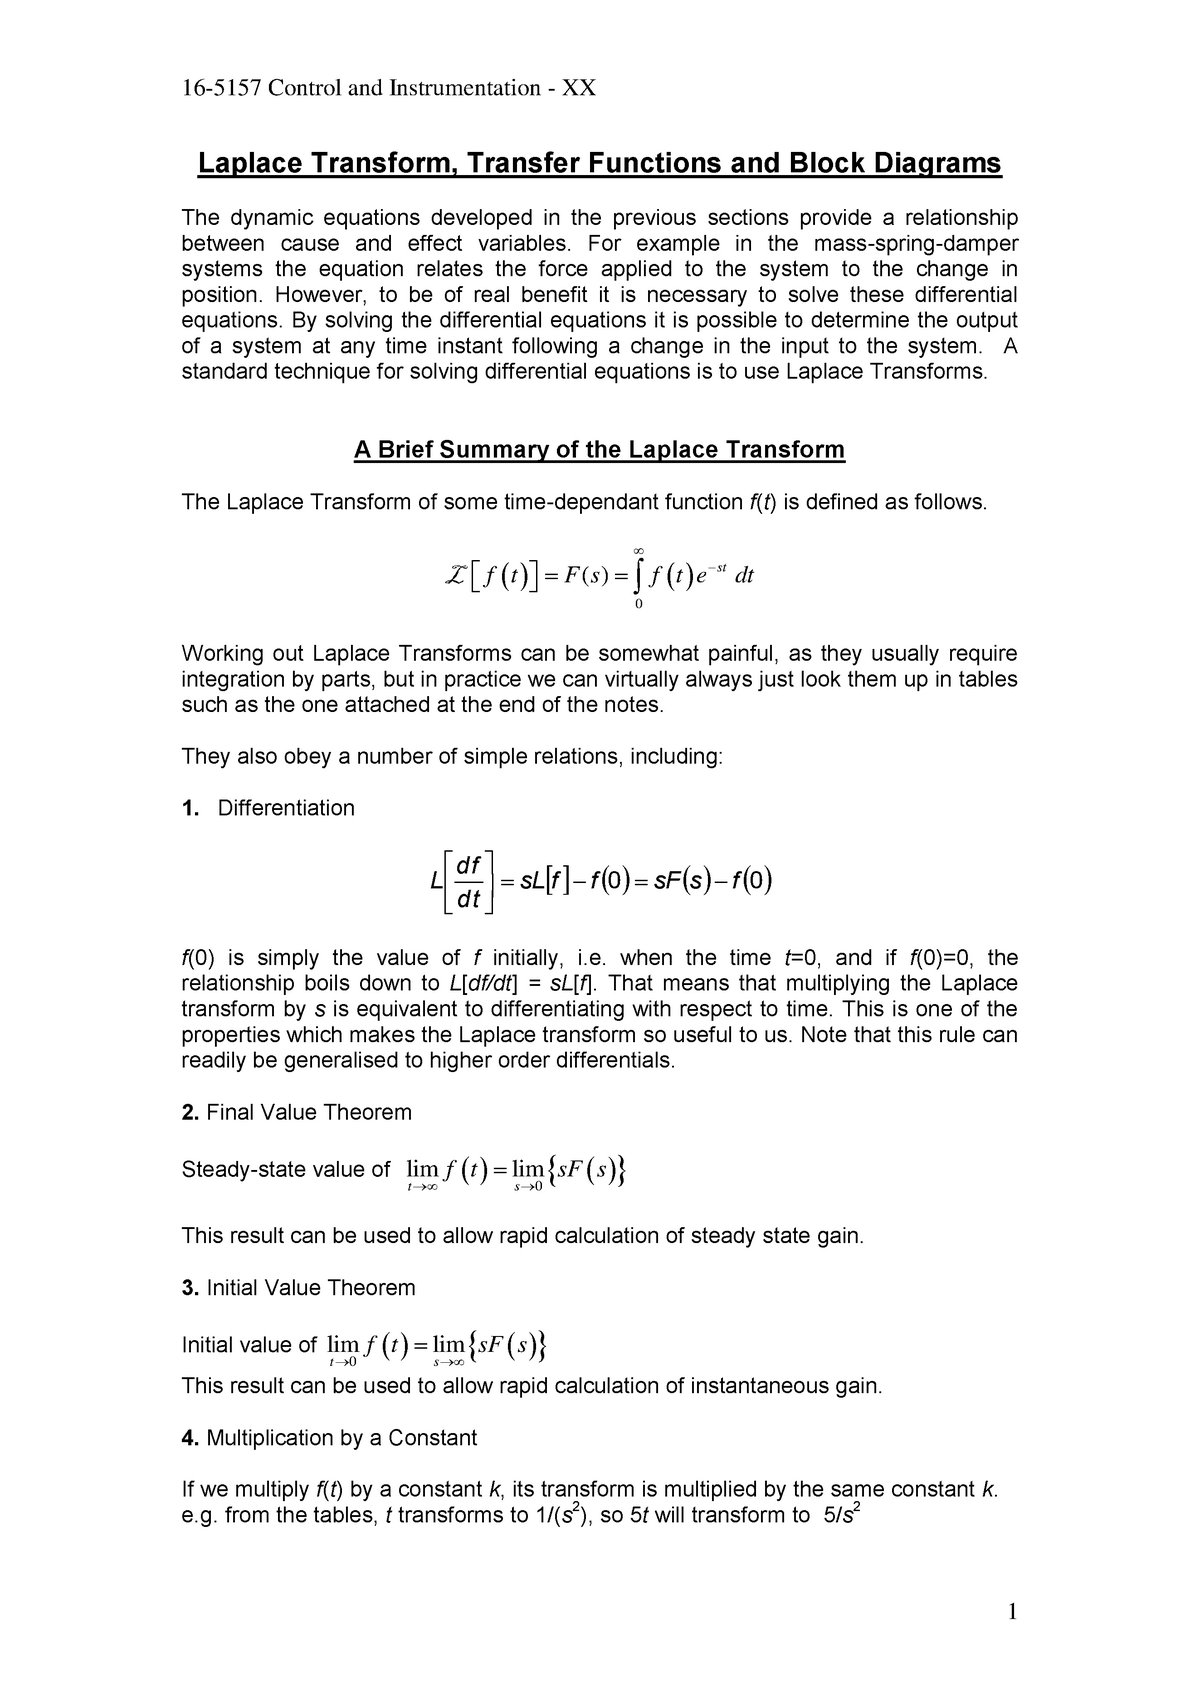 Lecture Notes 2 - Laplace Transform  Transfer Functions And Block Diagrams